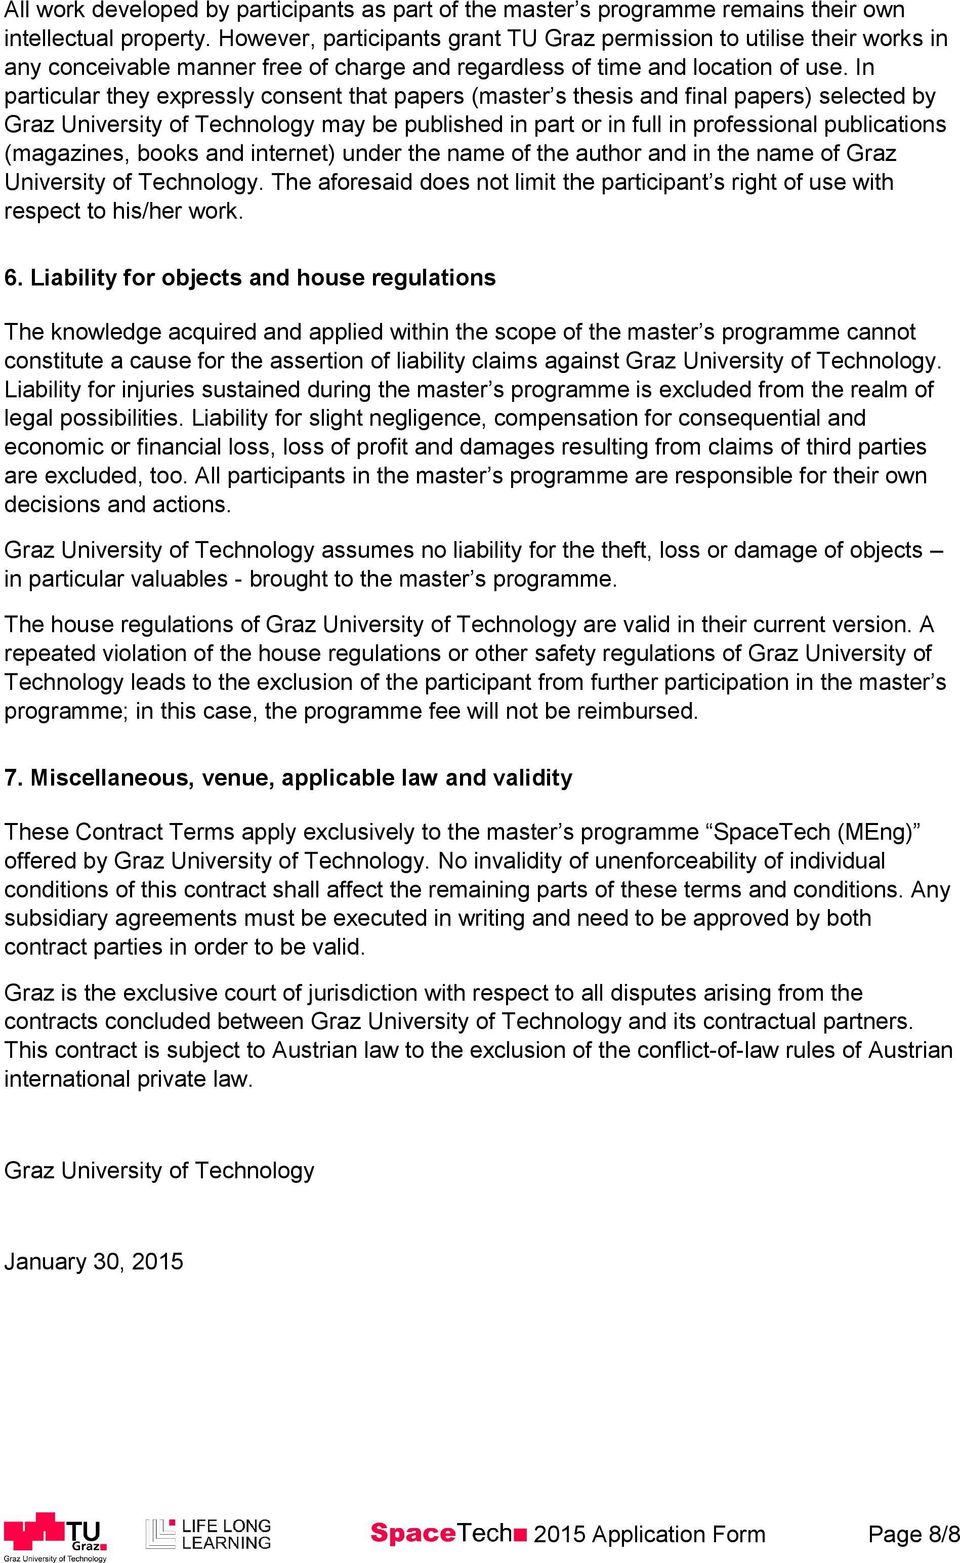 In particular they expressly consent that papers (master s thesis and final papers) selected by Graz University of Technology may be published in part or in full in professional publications